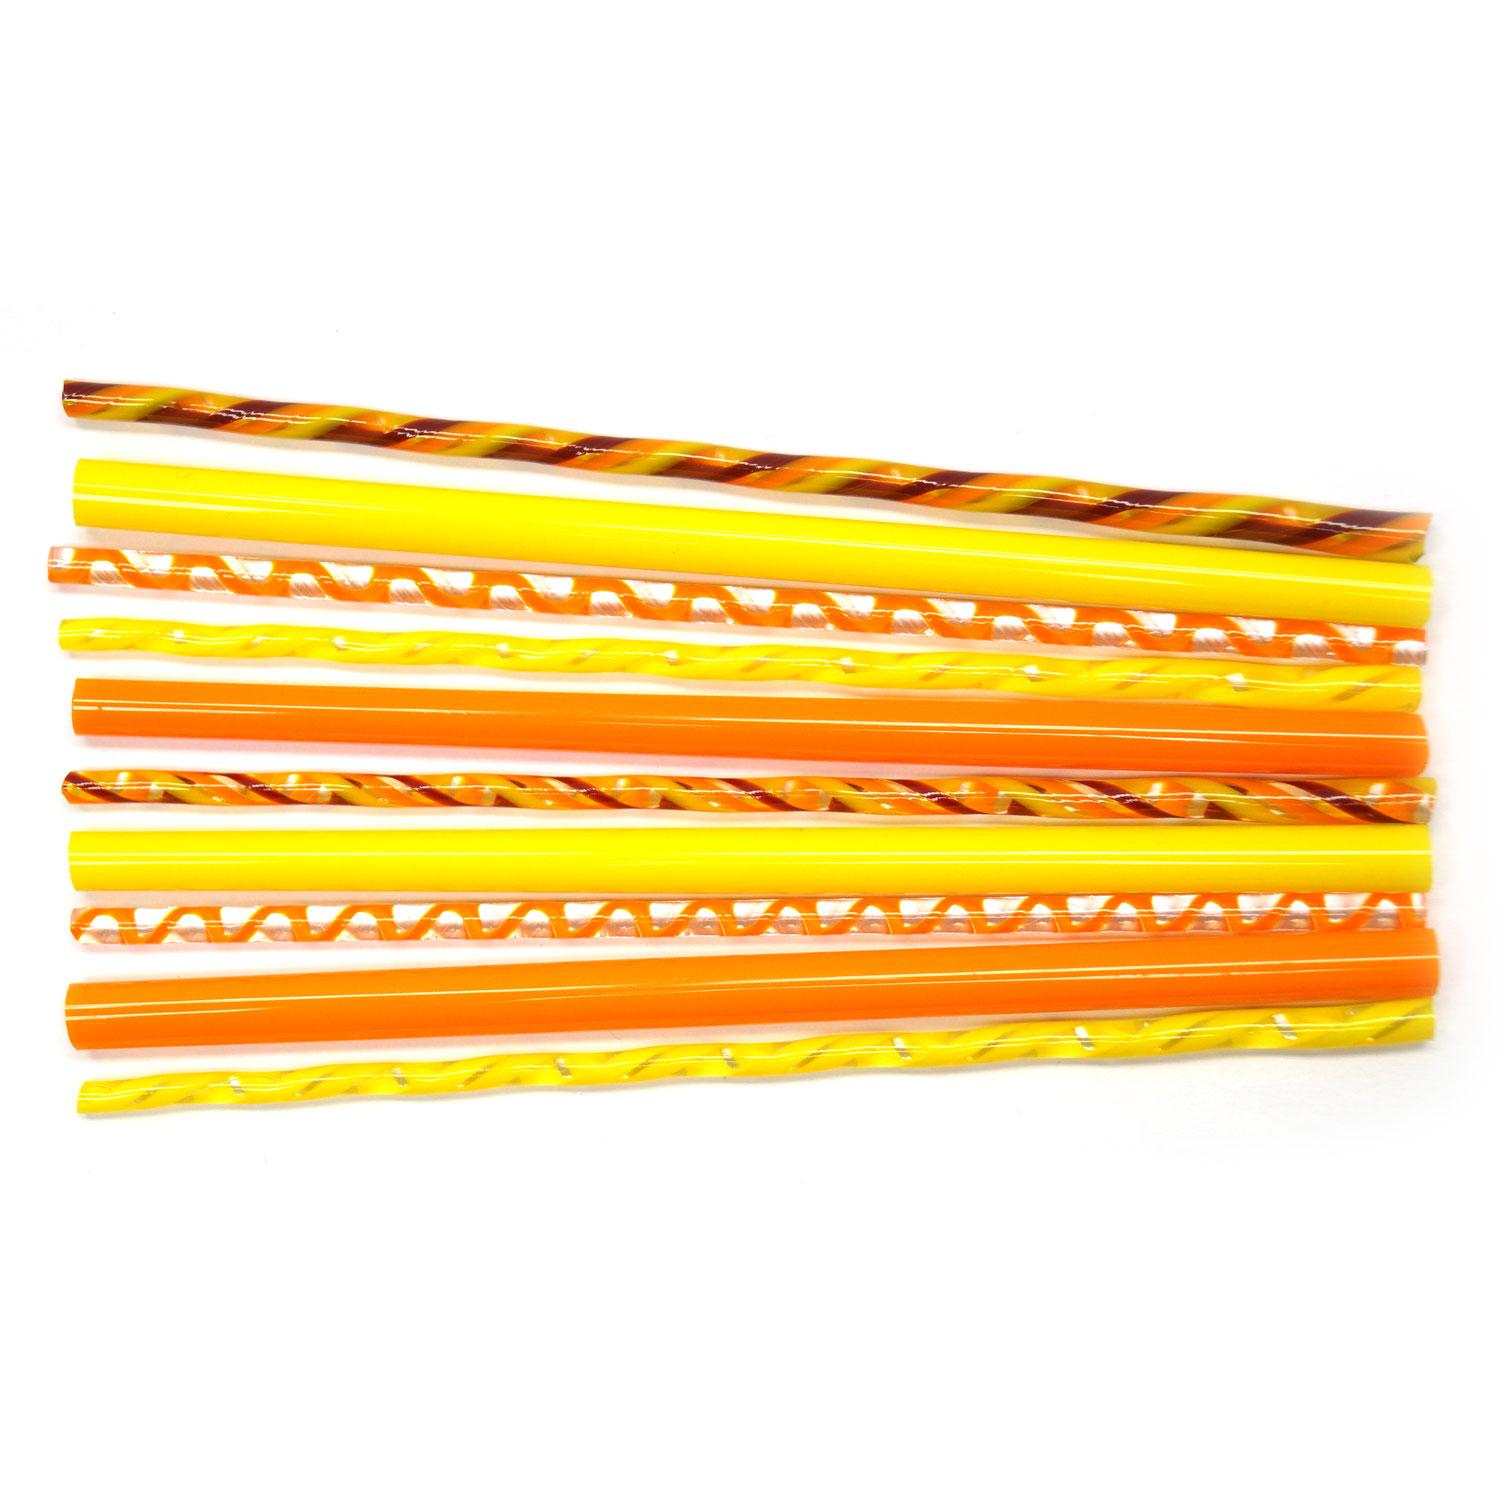 Warms Rod and Twisted Cane Assortment - 96 COE